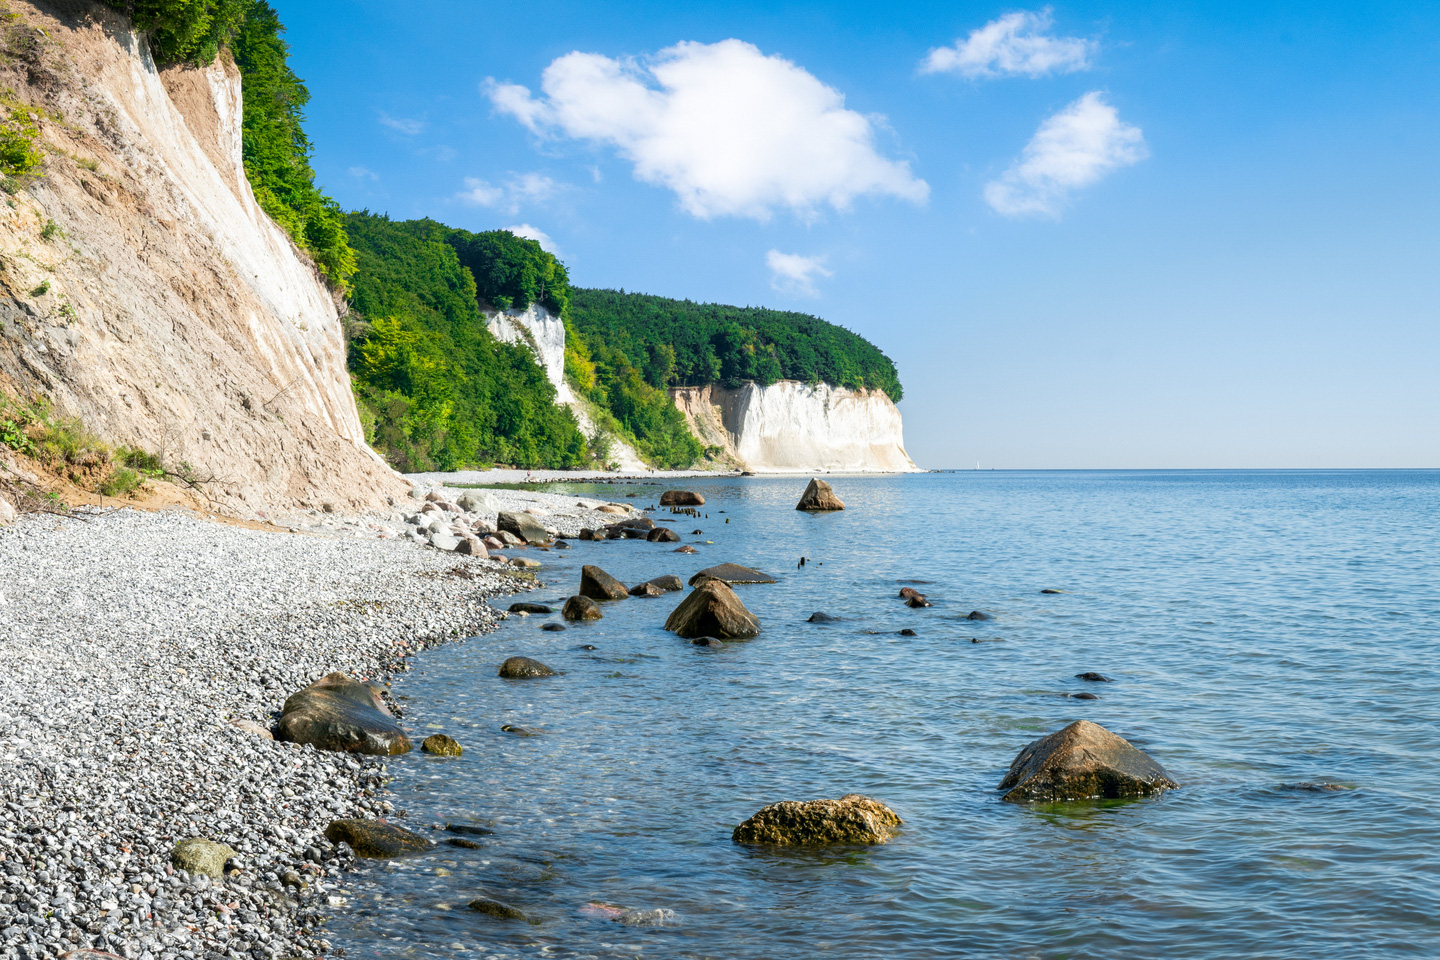 http://Camping%20On%20The%20Baltic%20Coast%20Shutterstock%201466934392